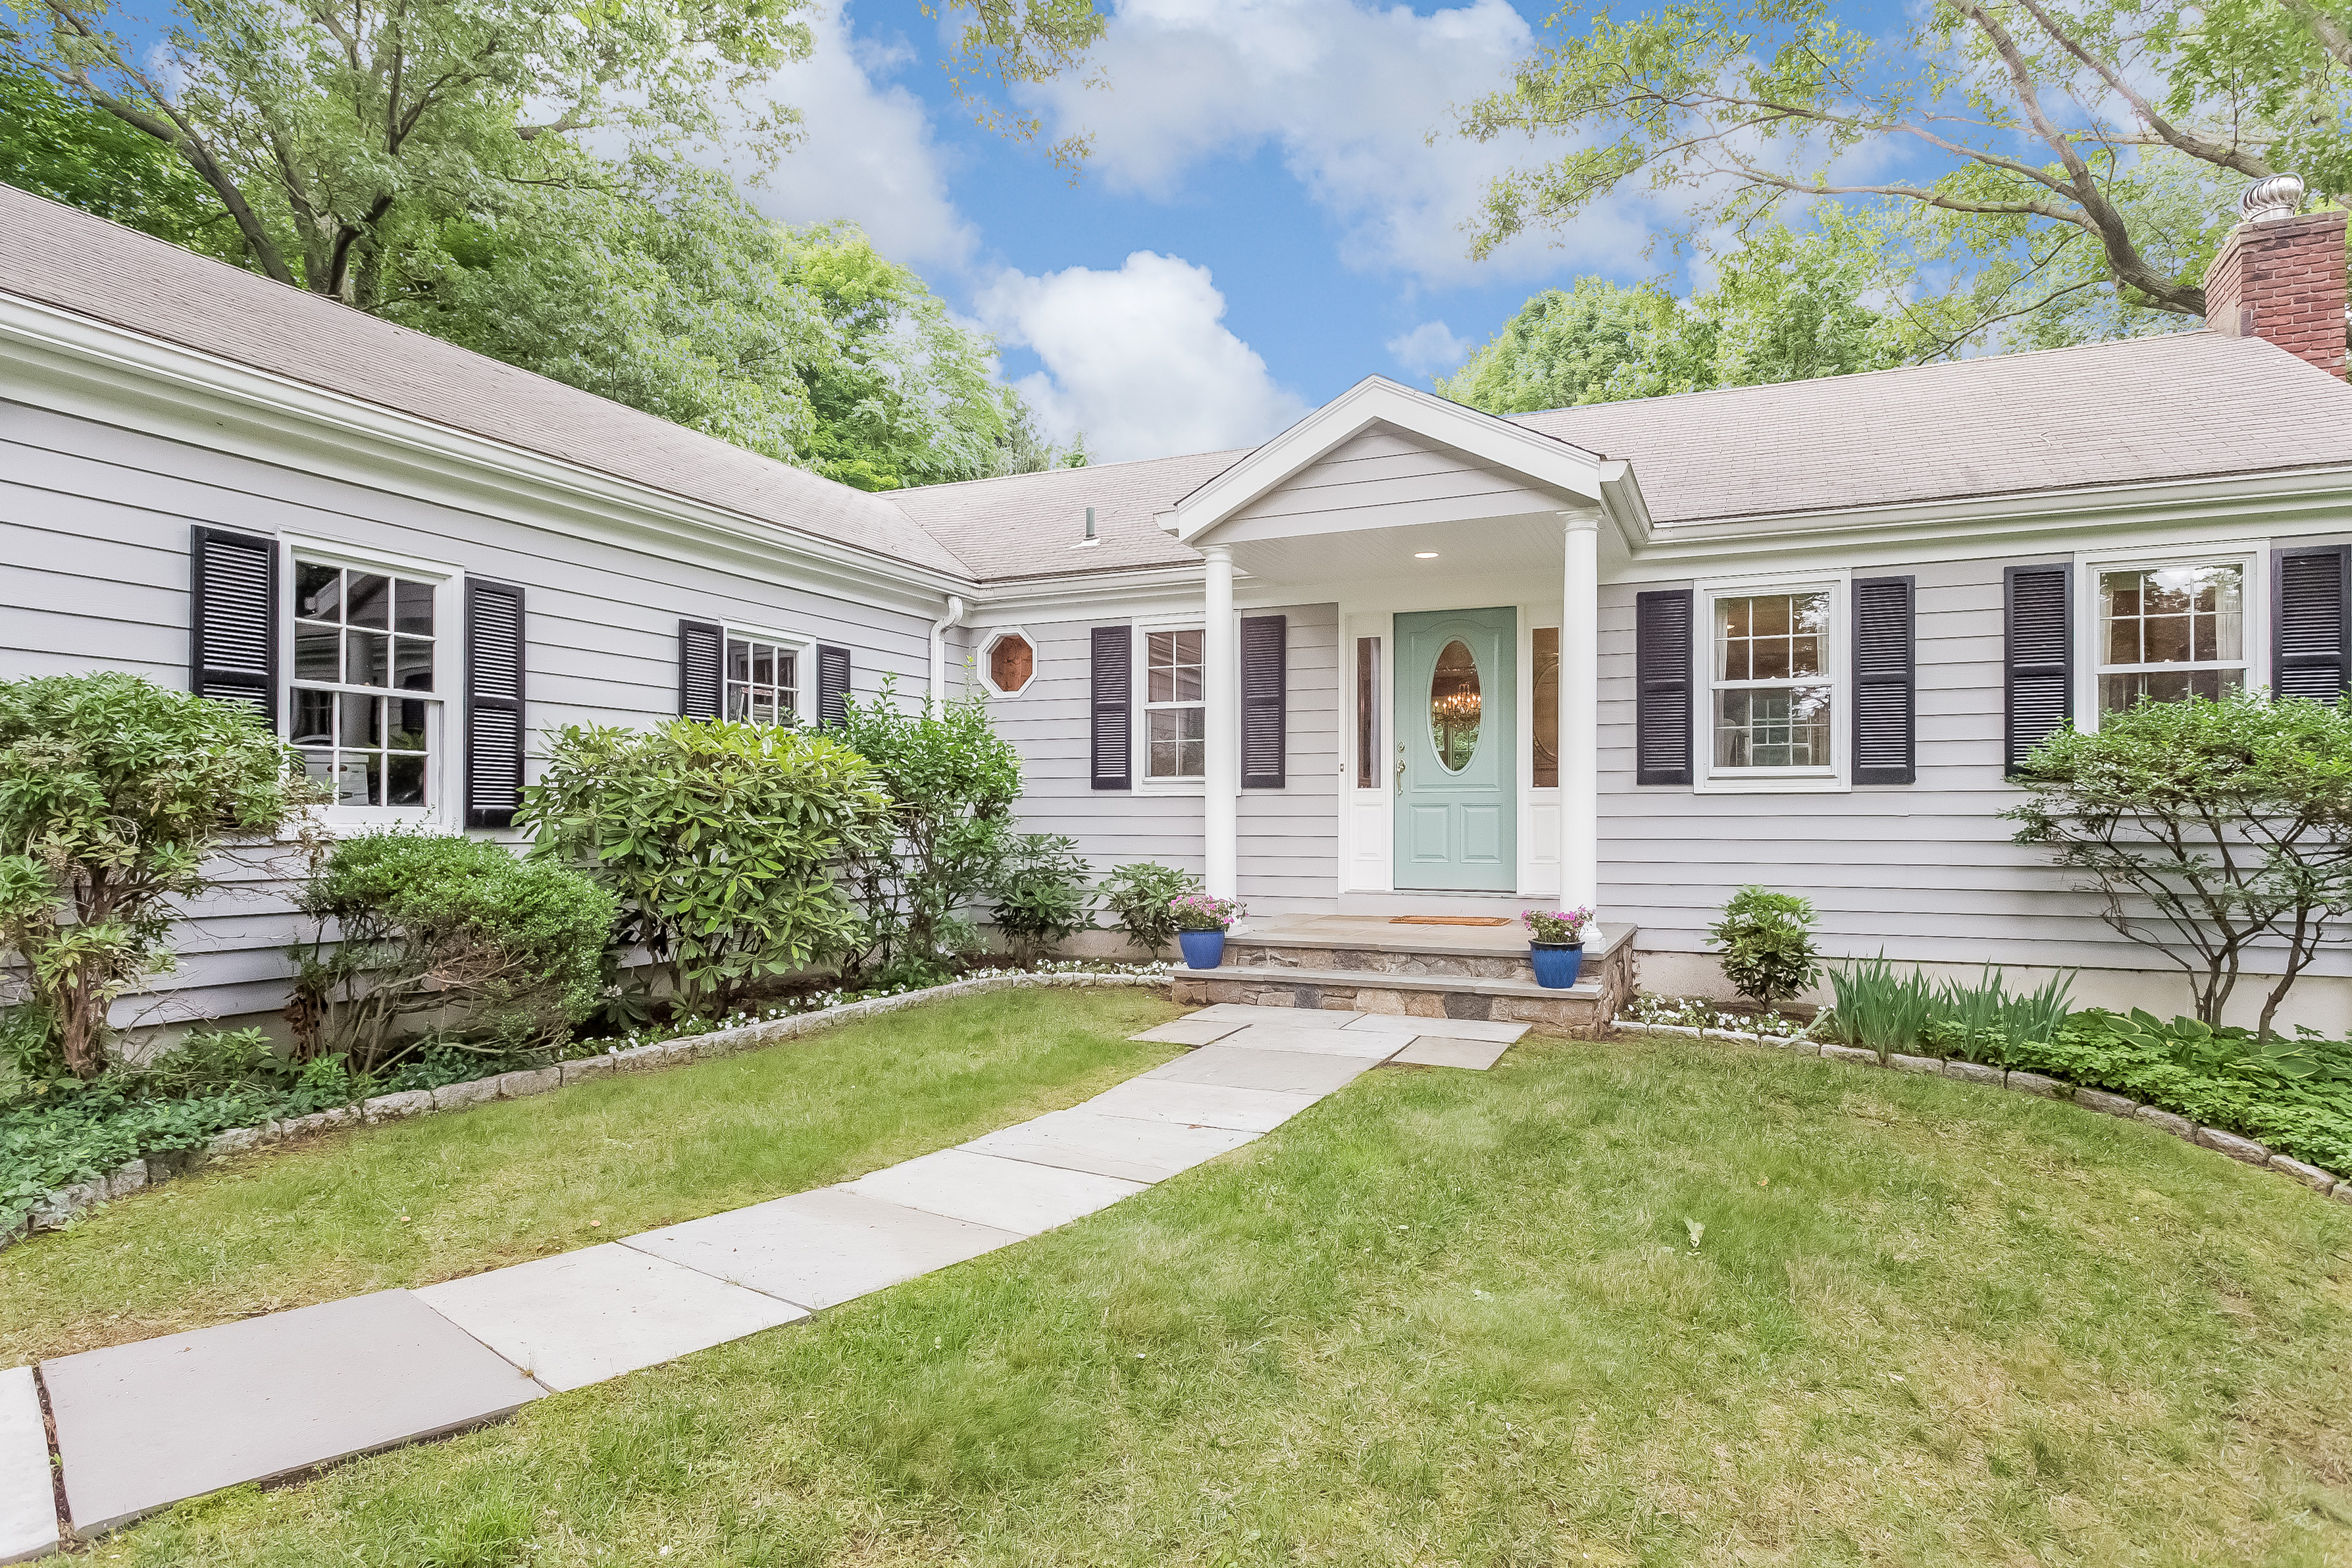 Single Family Home for Sale at 332 Rowayton Avenue Rowayton, Norwalk, Connecticut 06853 United States